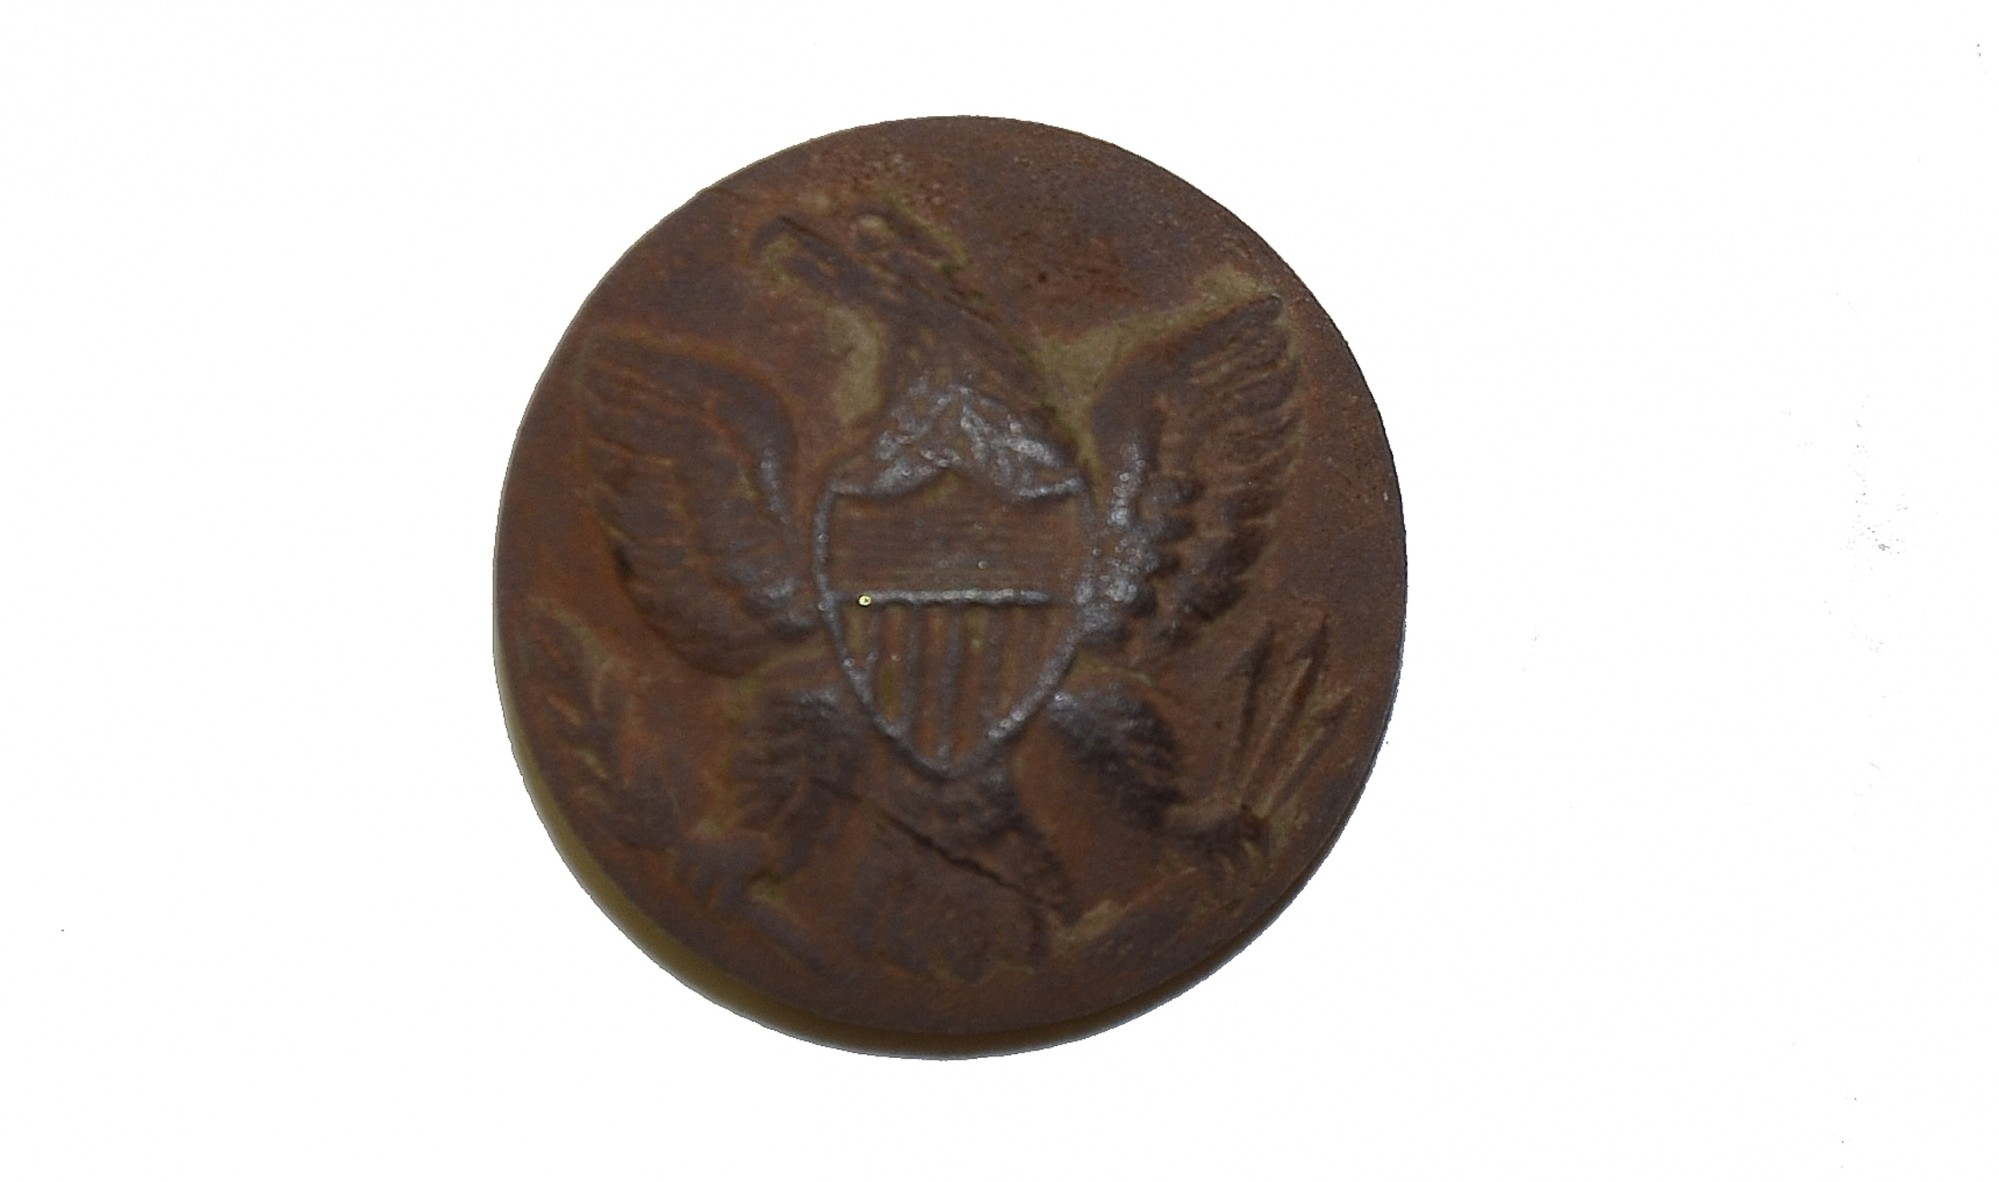 US GENERAL SERVICE EAGLE JACKET BUTTON, RECOVERED AT LITTLE ROUND TOP, GETTYSBURG